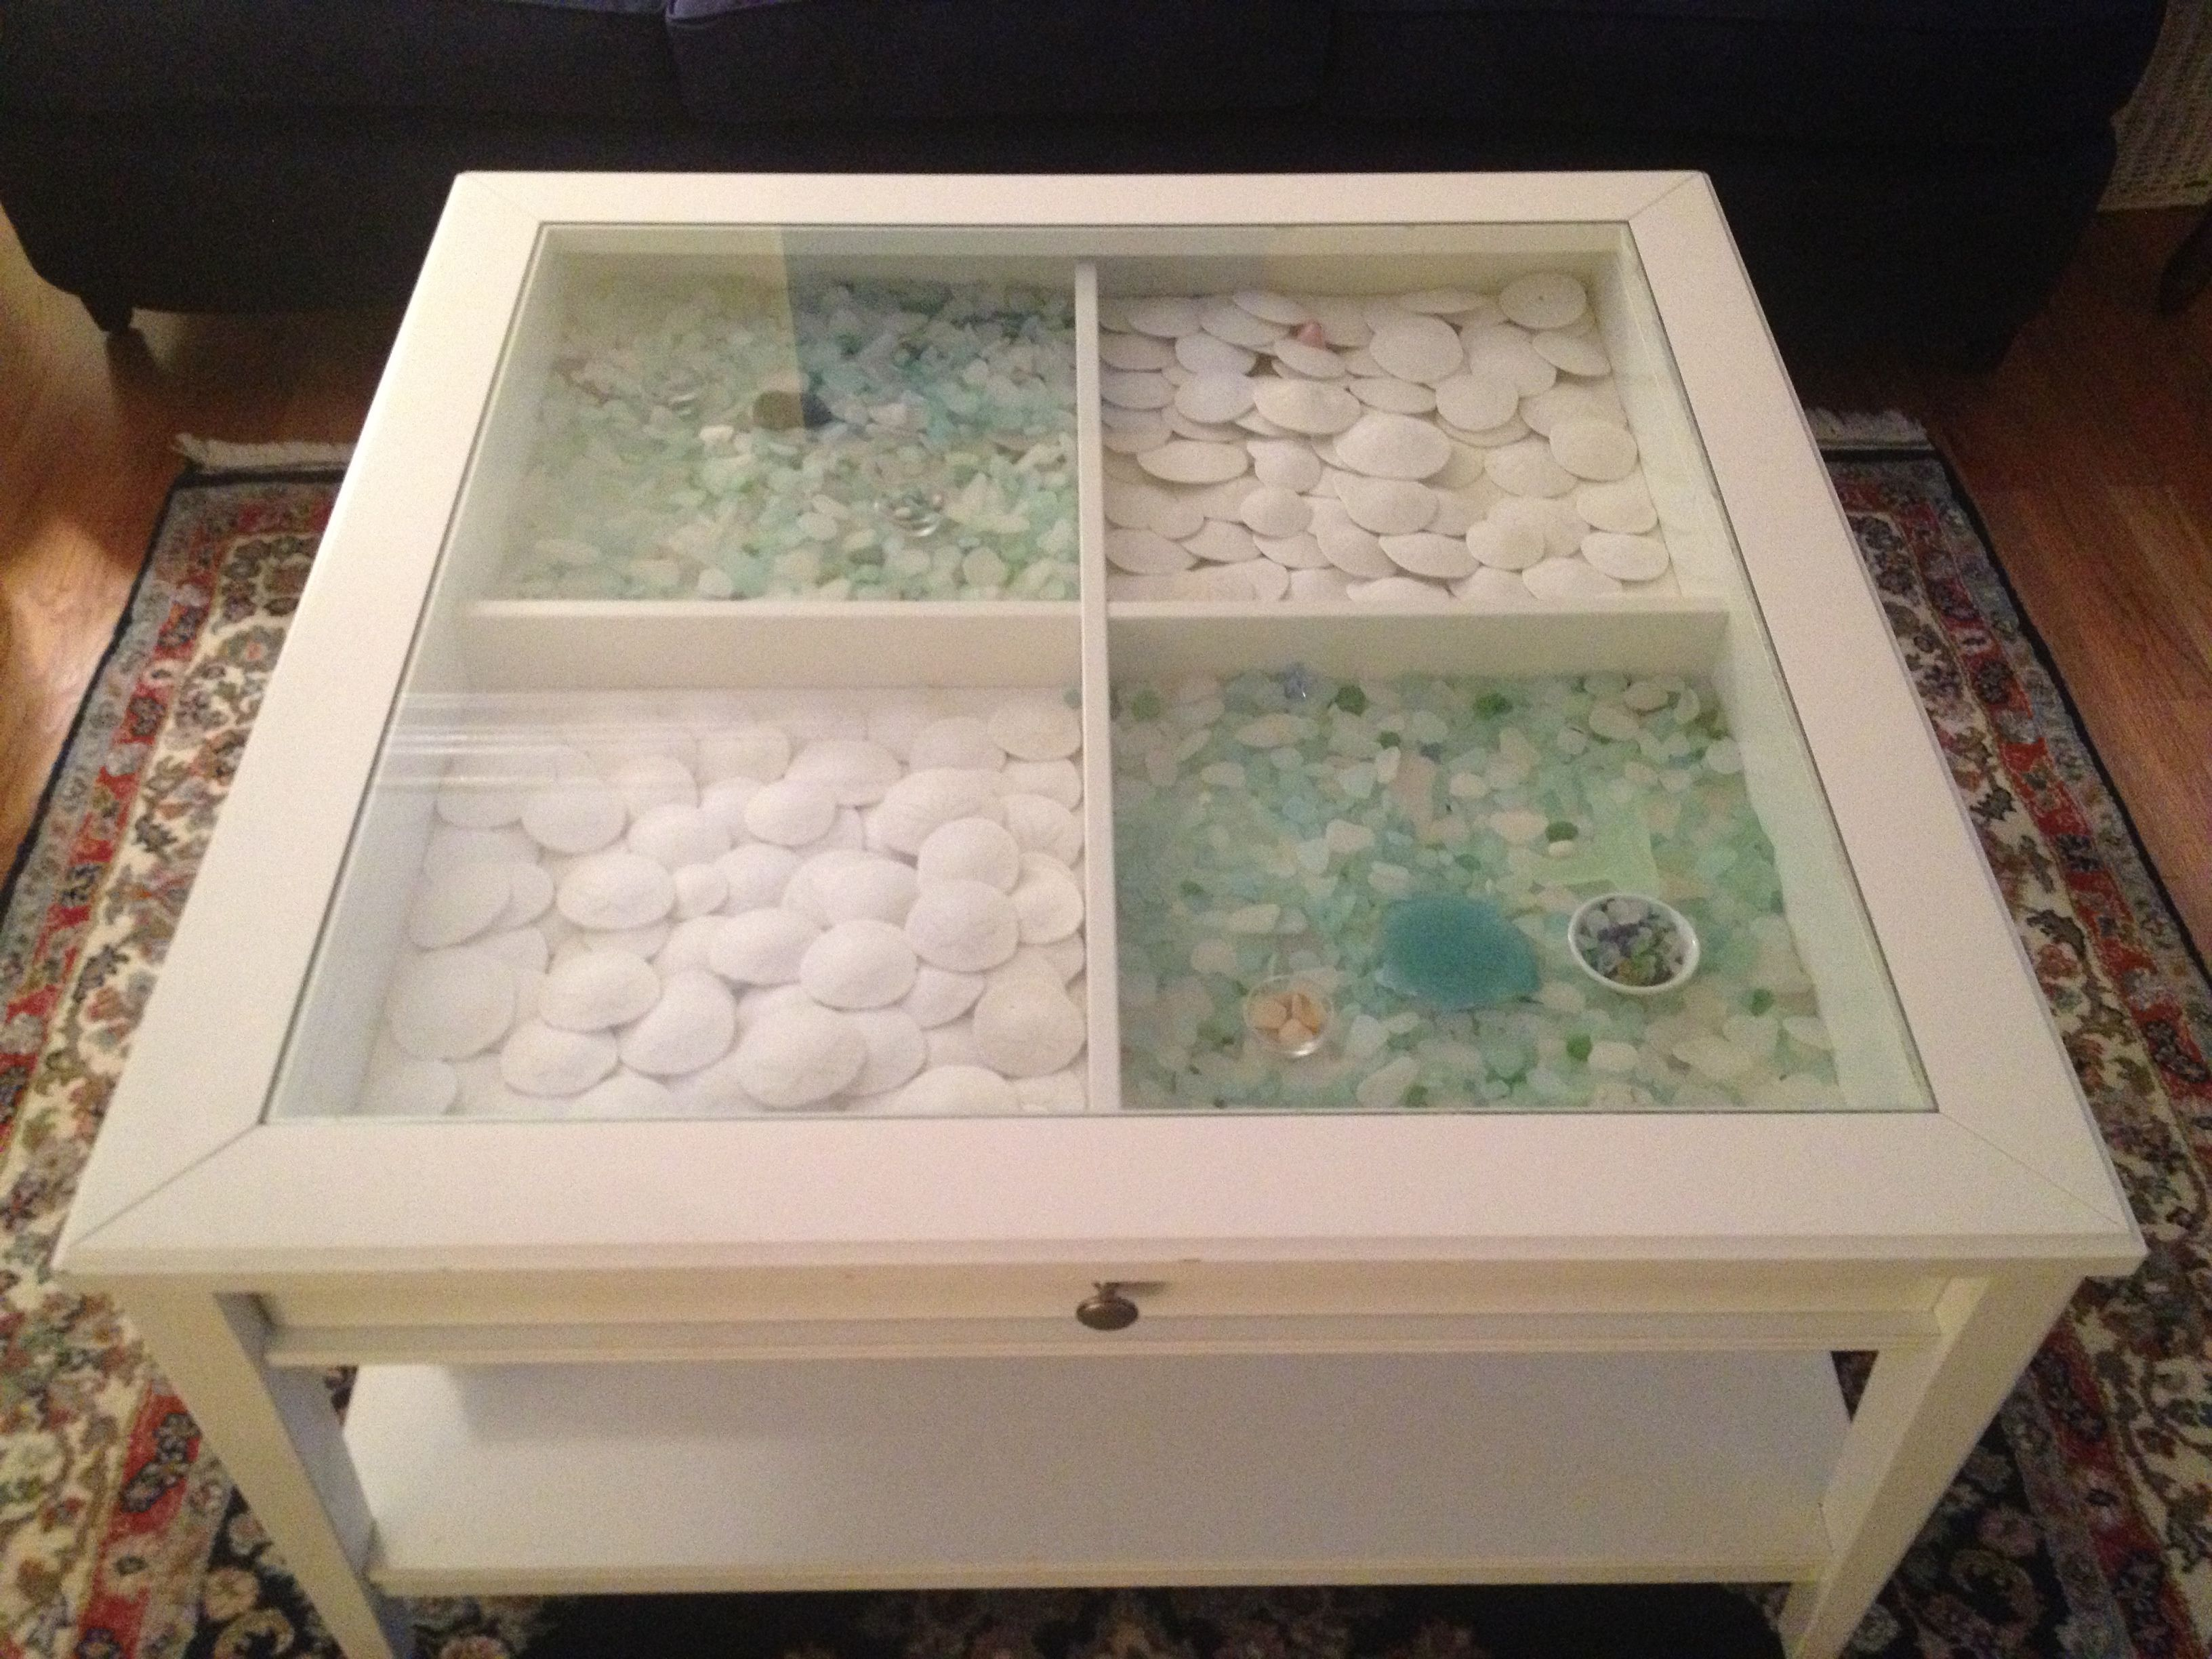 Sea glass sand dollars displayed in a glass top coffee table